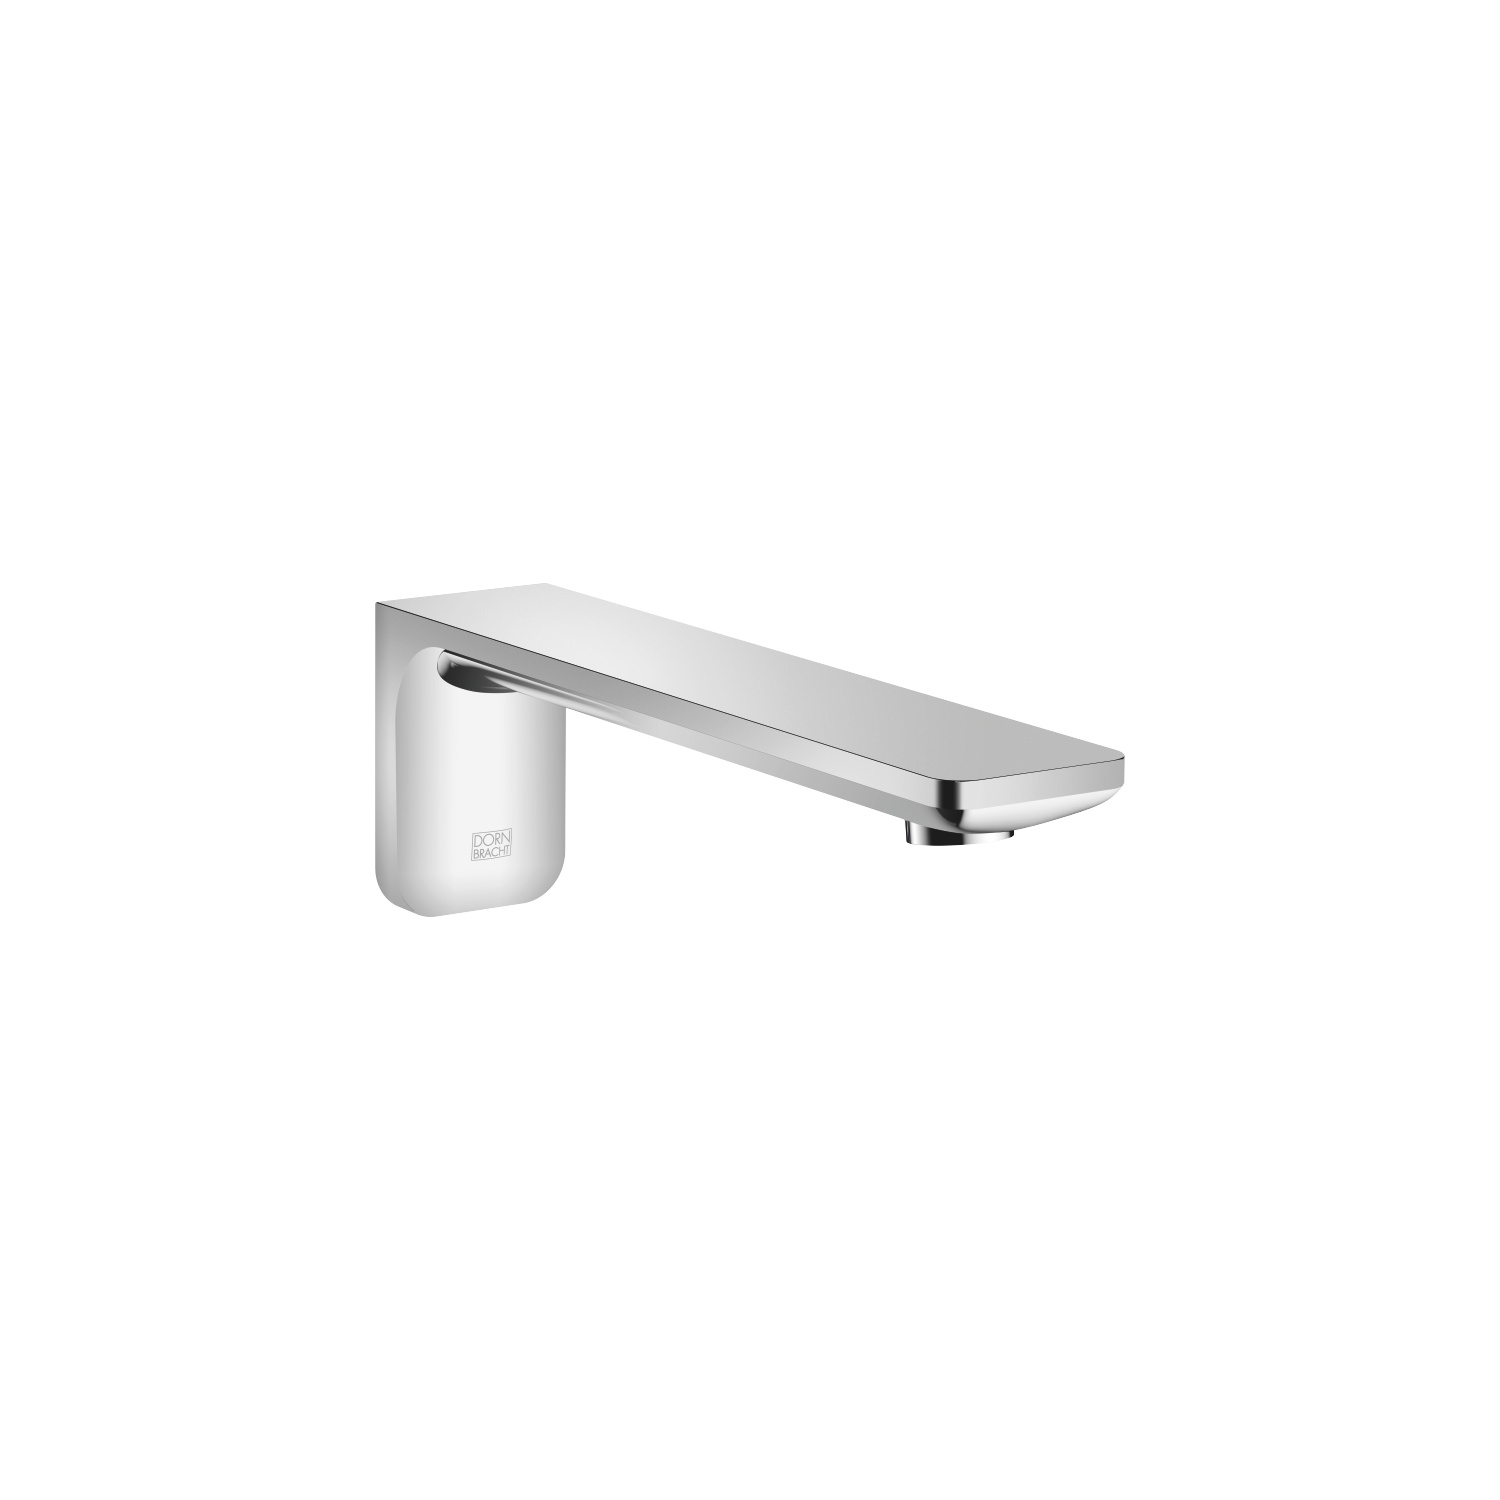 Tub spout for wall-mounted installation - polished chrome